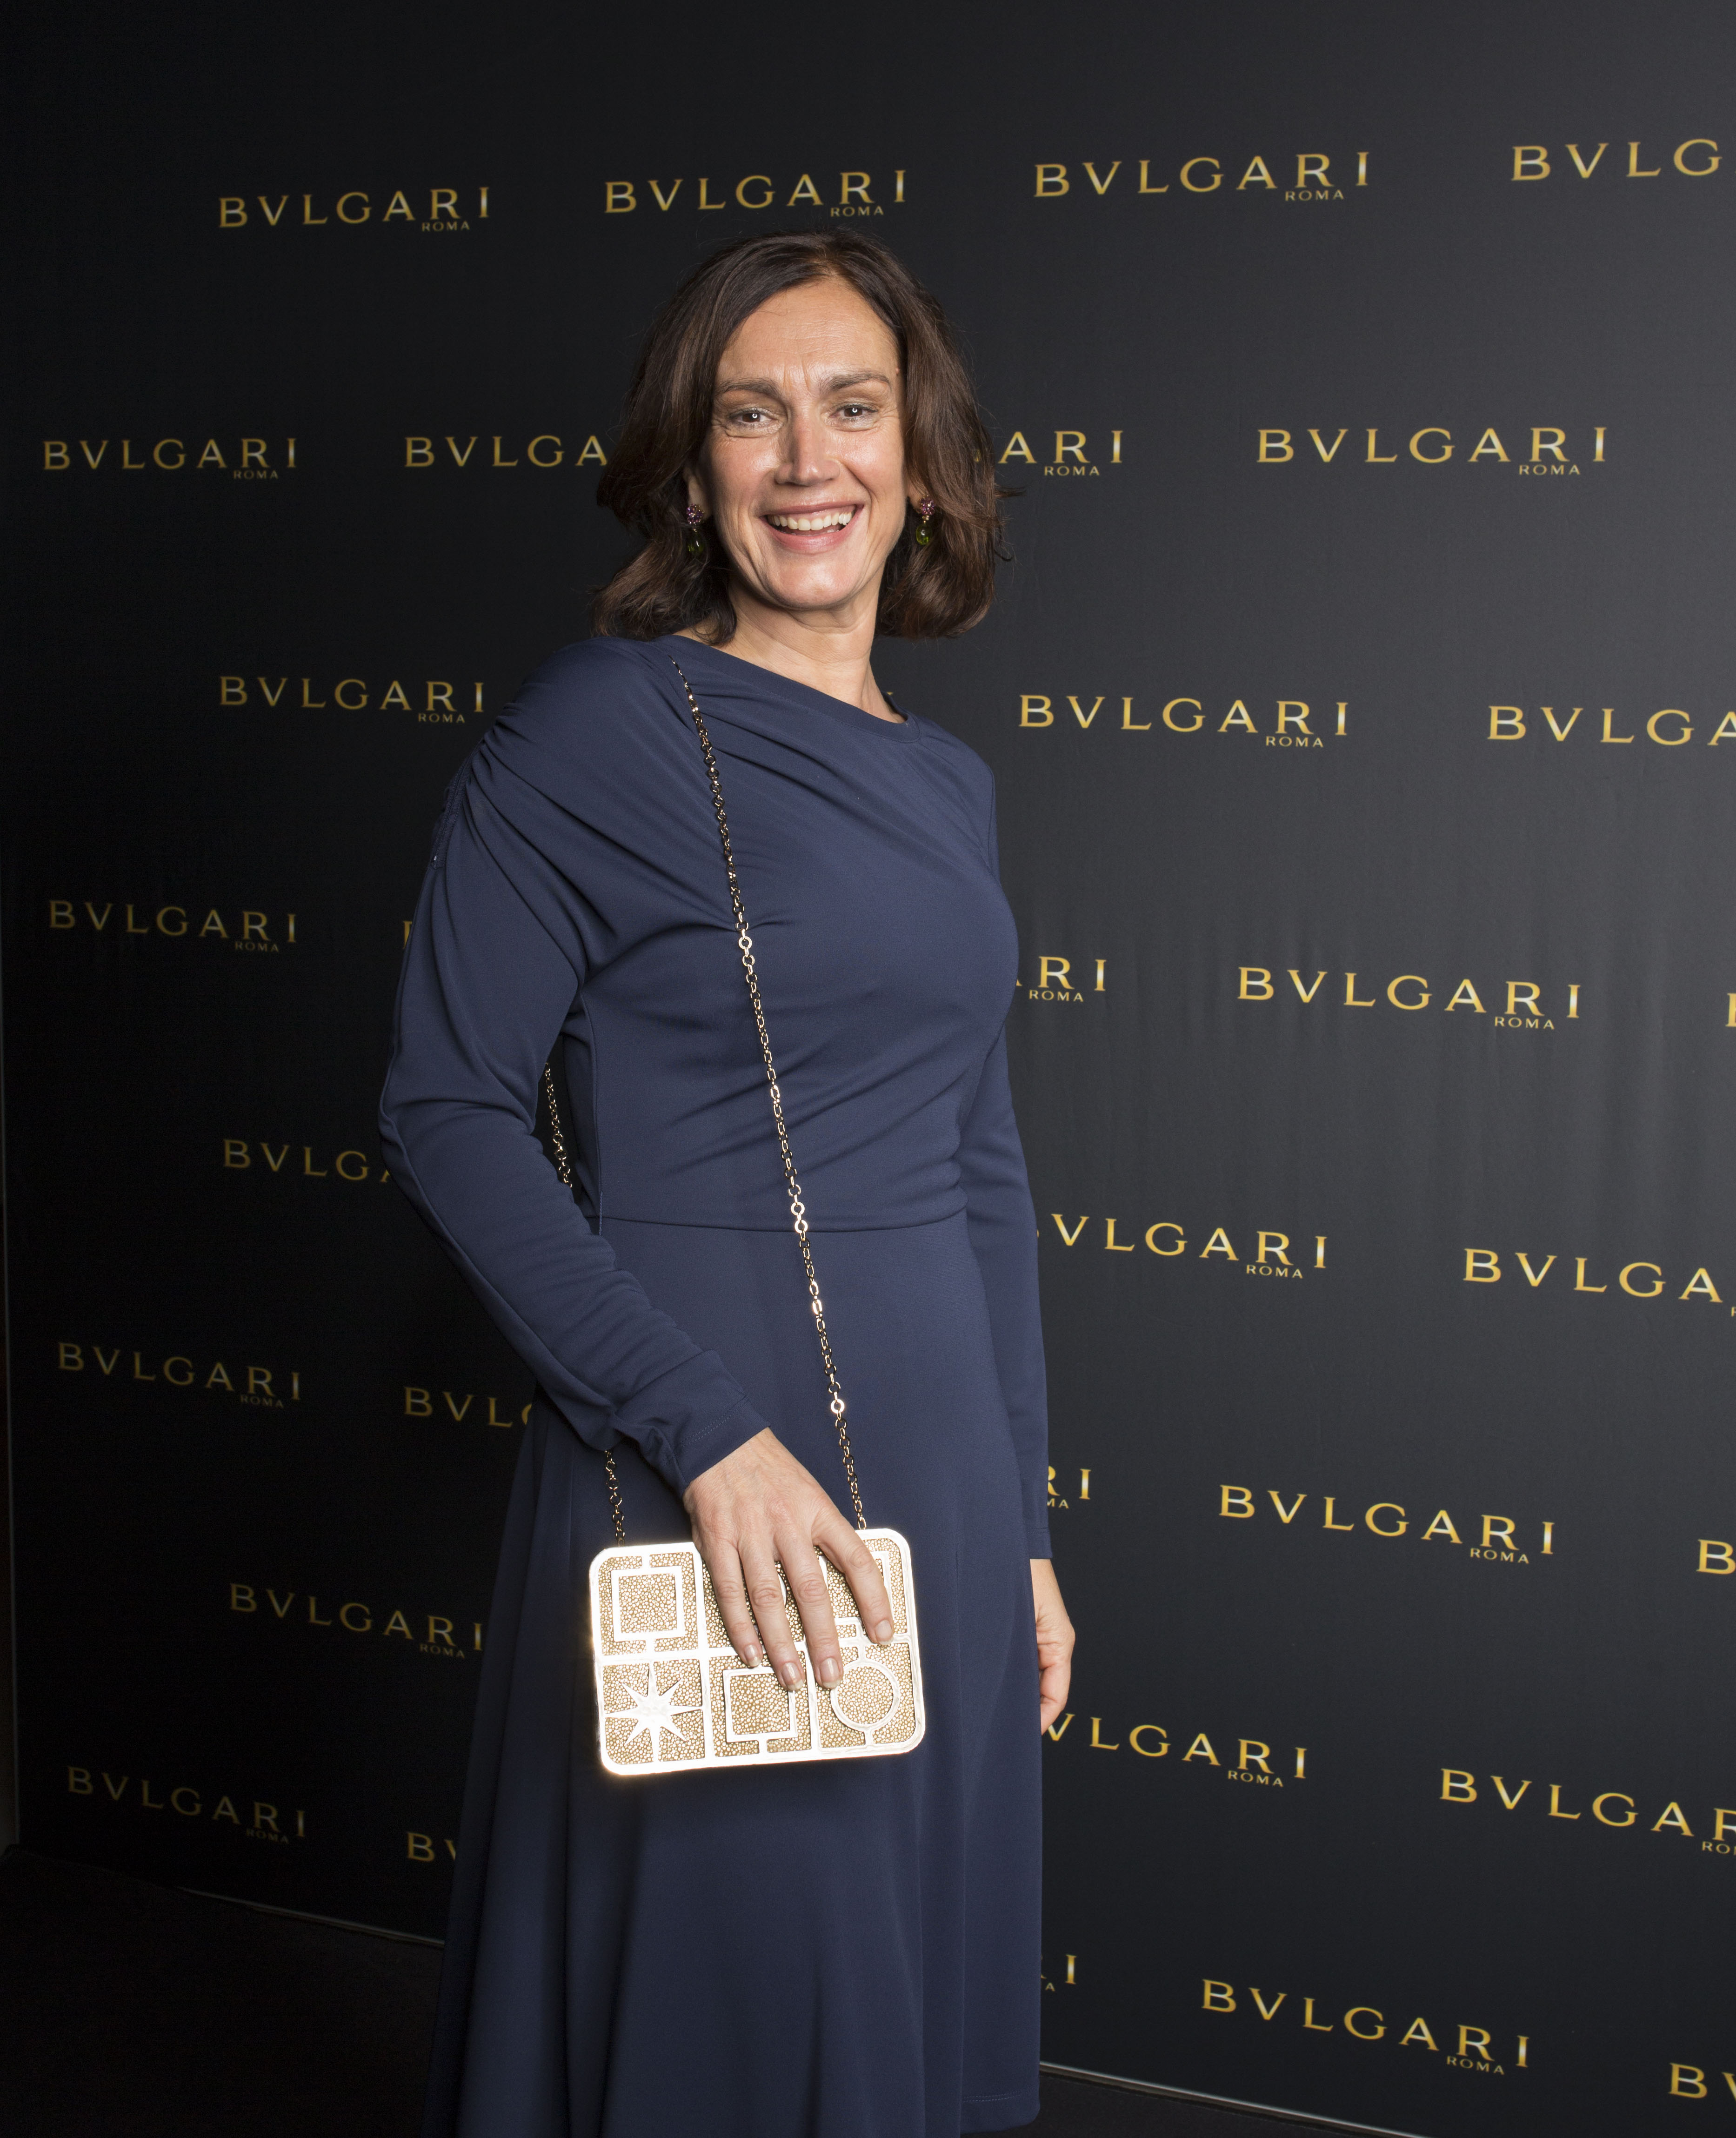 AMSTERDAM, NETHERLANDS - NOVEMBER 2: Monic Hendrickx attends Bulgari facilitating homecoming of long lost van Gogh masterpieces at the Van Gogh Museum on November 2, 2017 in Amsterdam Netherlands. (Photo by Serge Ligtenberg/Getty Images for Bulgari) *** Local Caption *** Monic Hendrickx